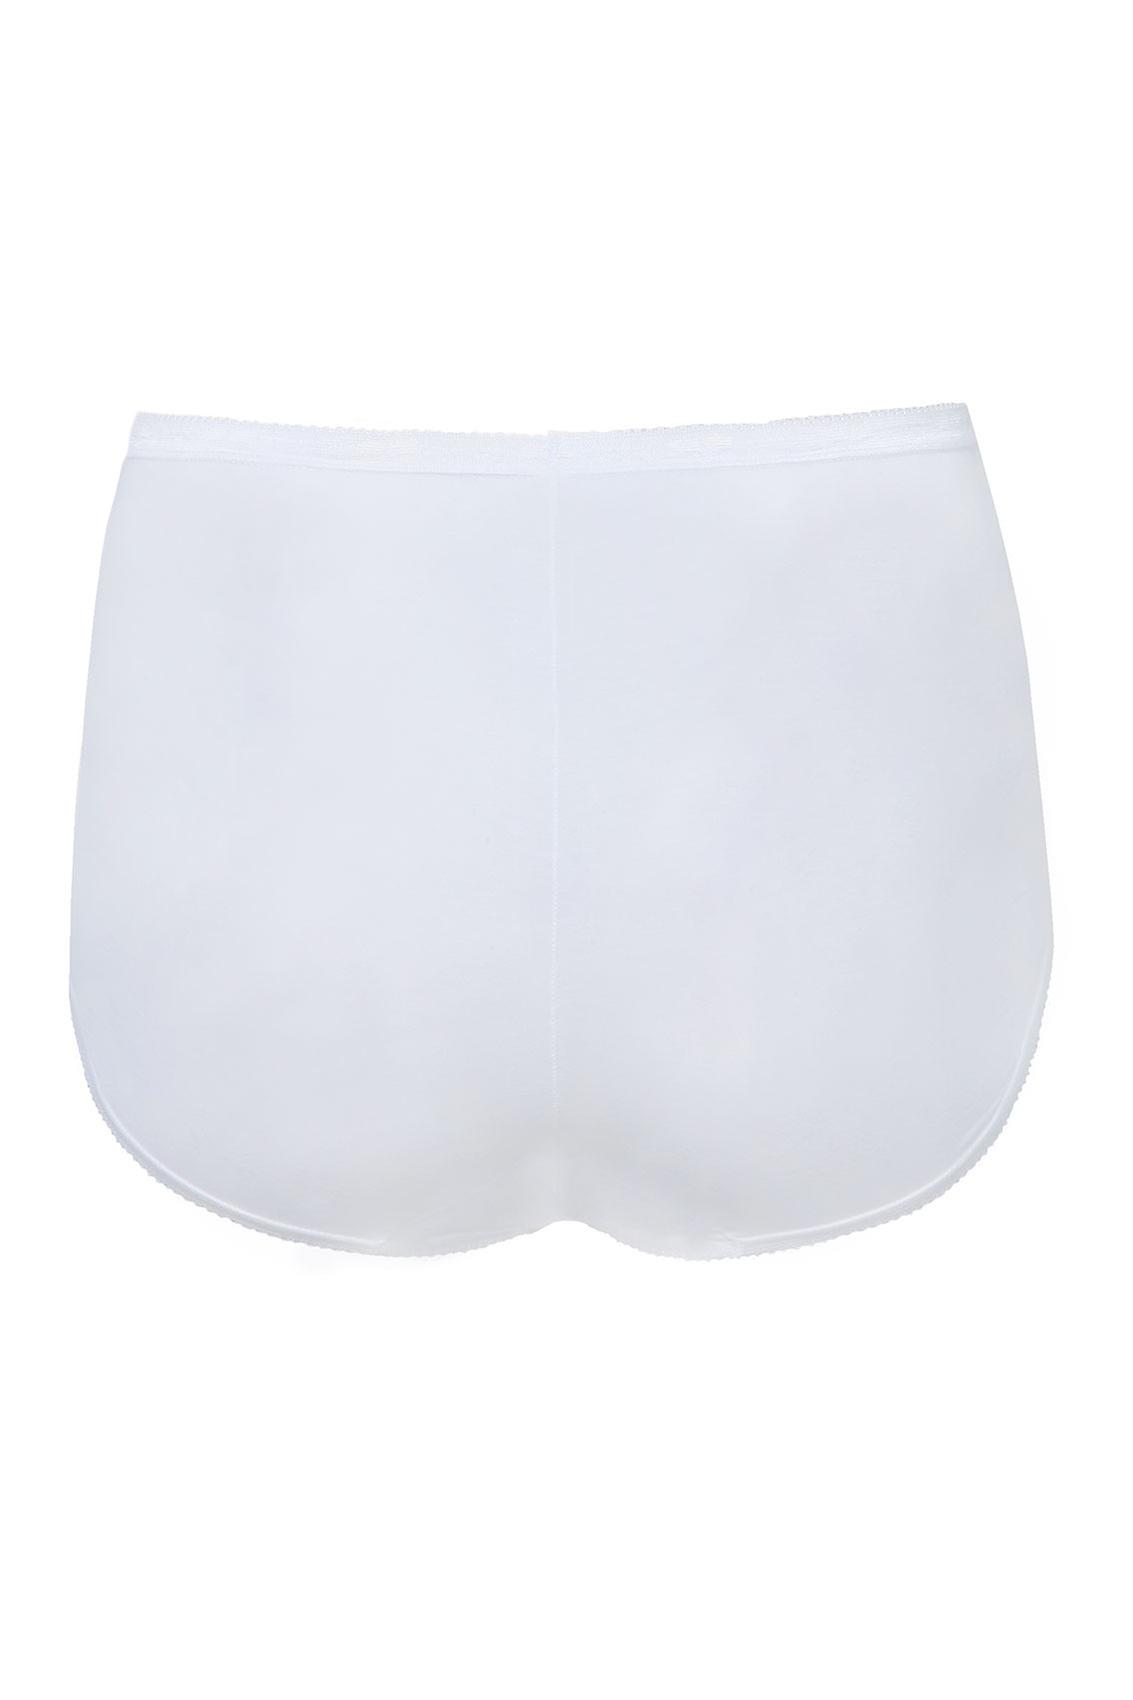 SLOGGI 3 PACK White Basic Maxi Briefs